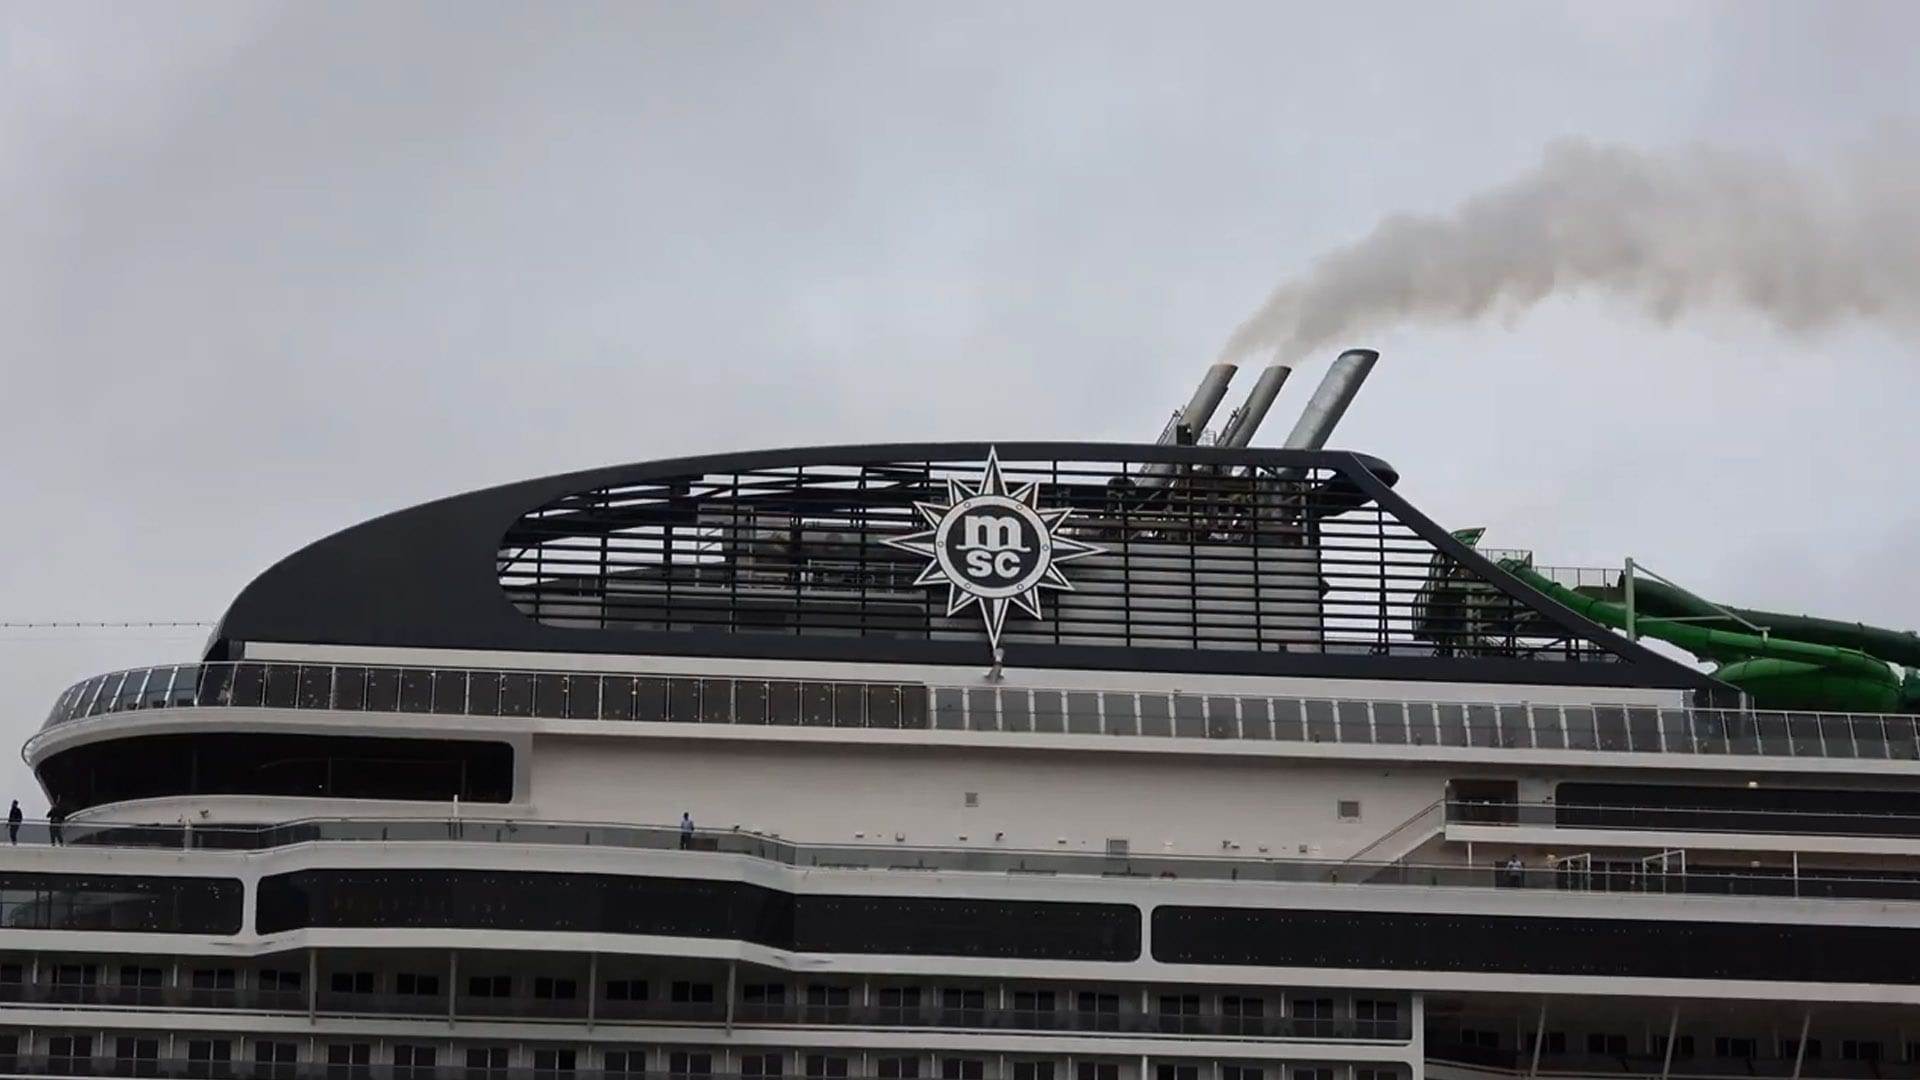 MSC Cruises Claims Title of World's First Carbon Neutral Cruise Line